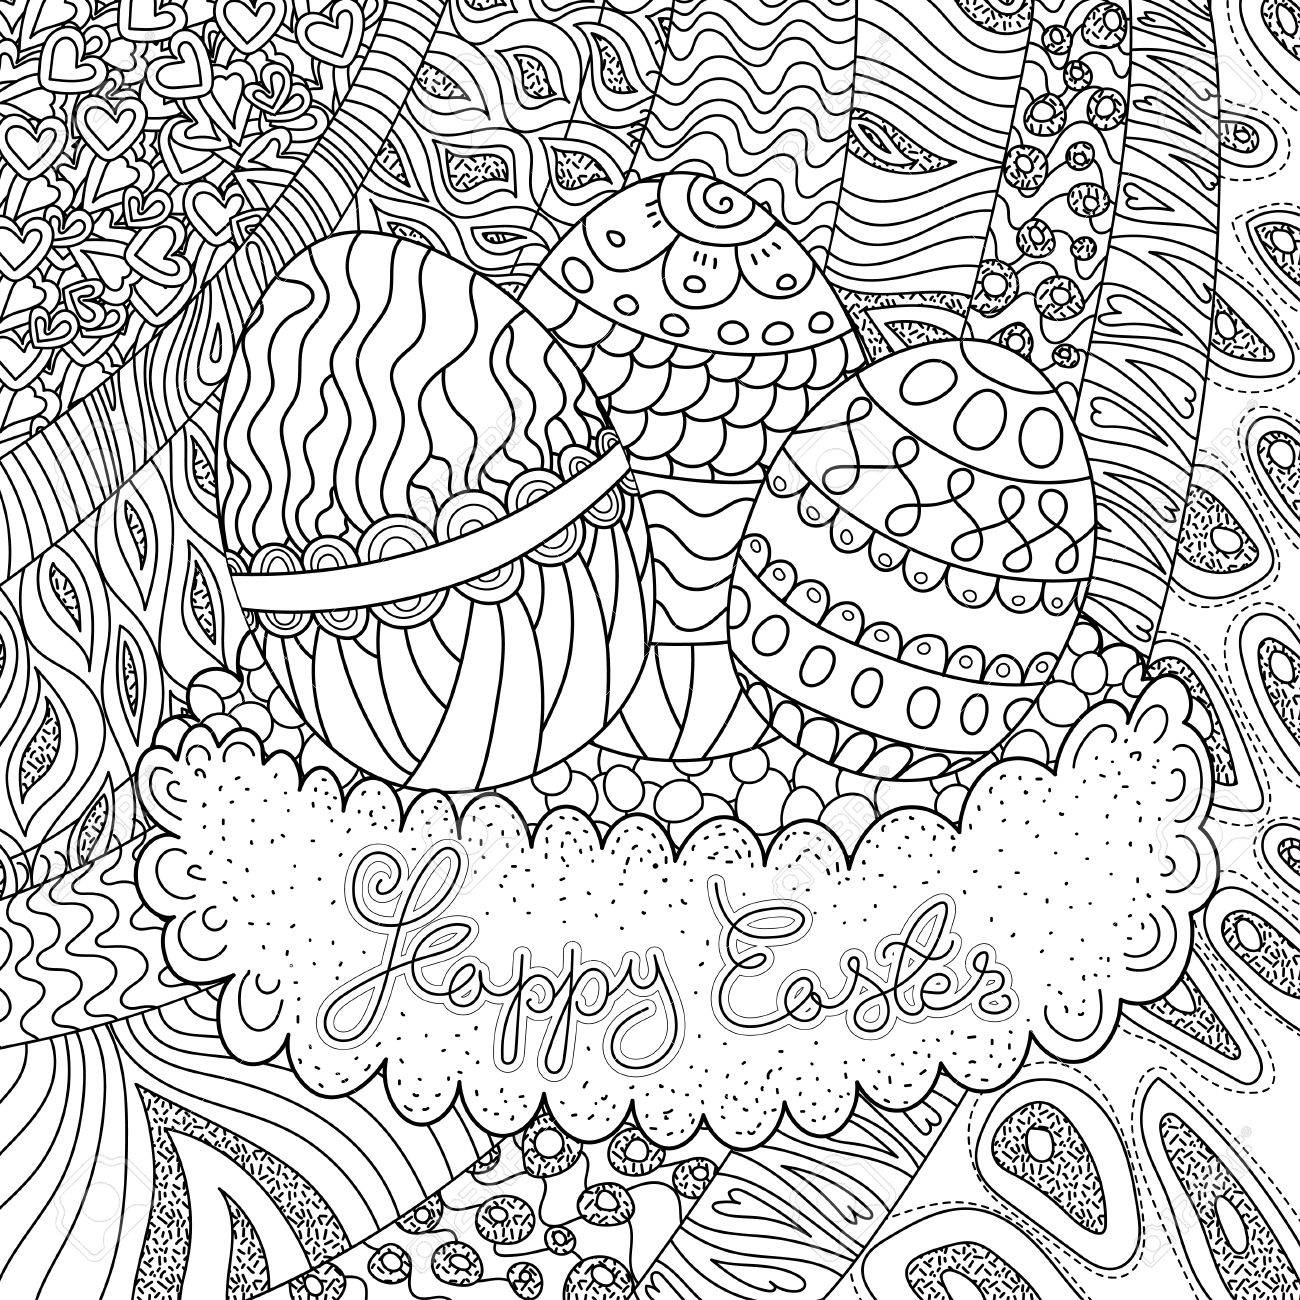 Happy Easter Coloring Book Page For Adult And Kids Stock